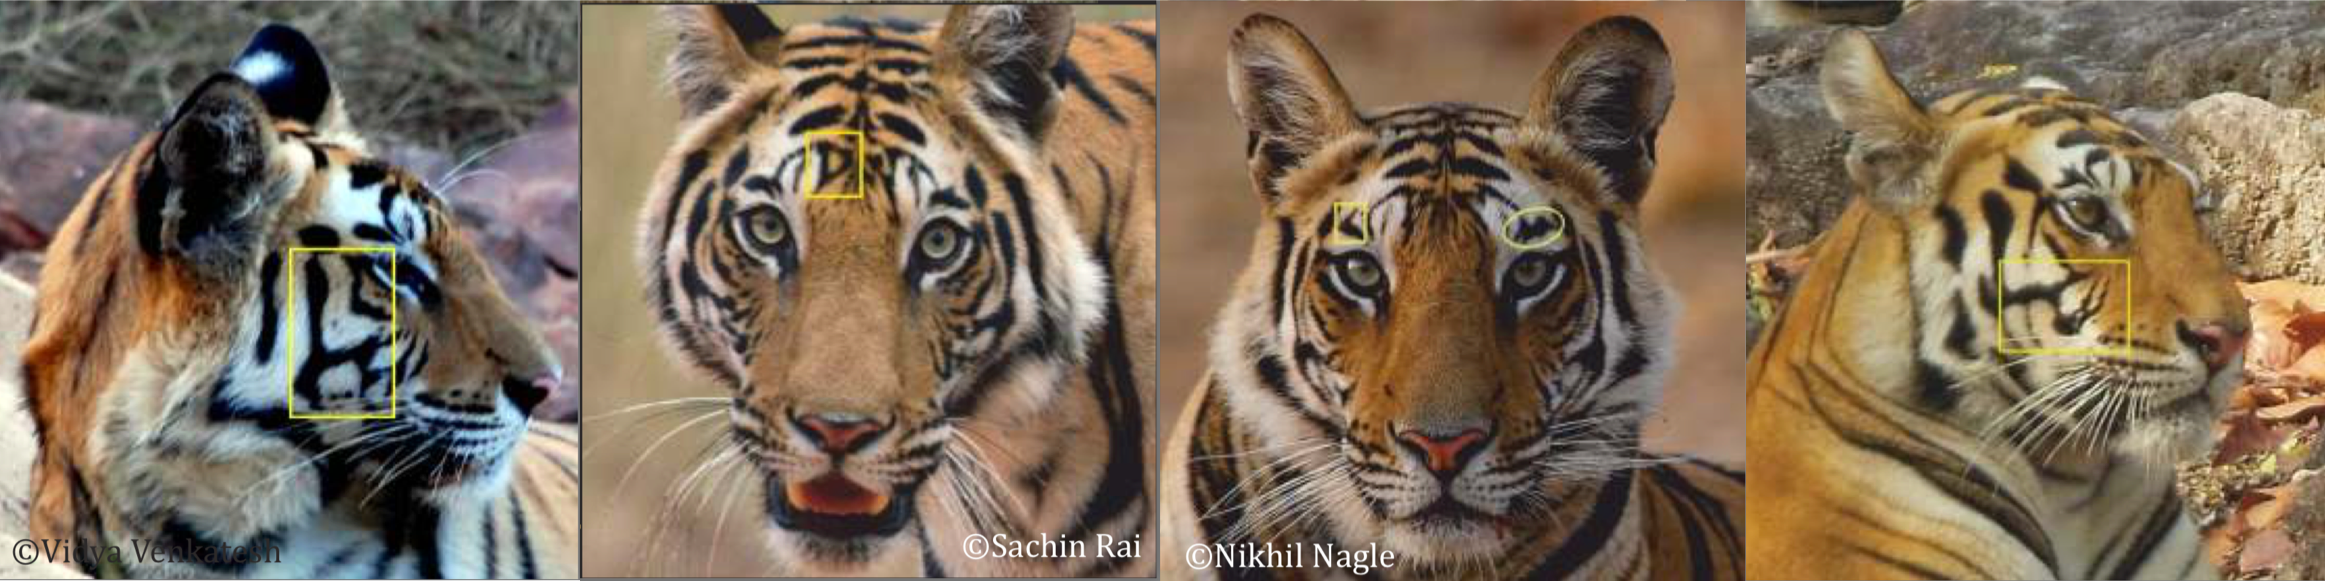 Distinguishing marks in the faces of tigers. Source: The Last Wilderness